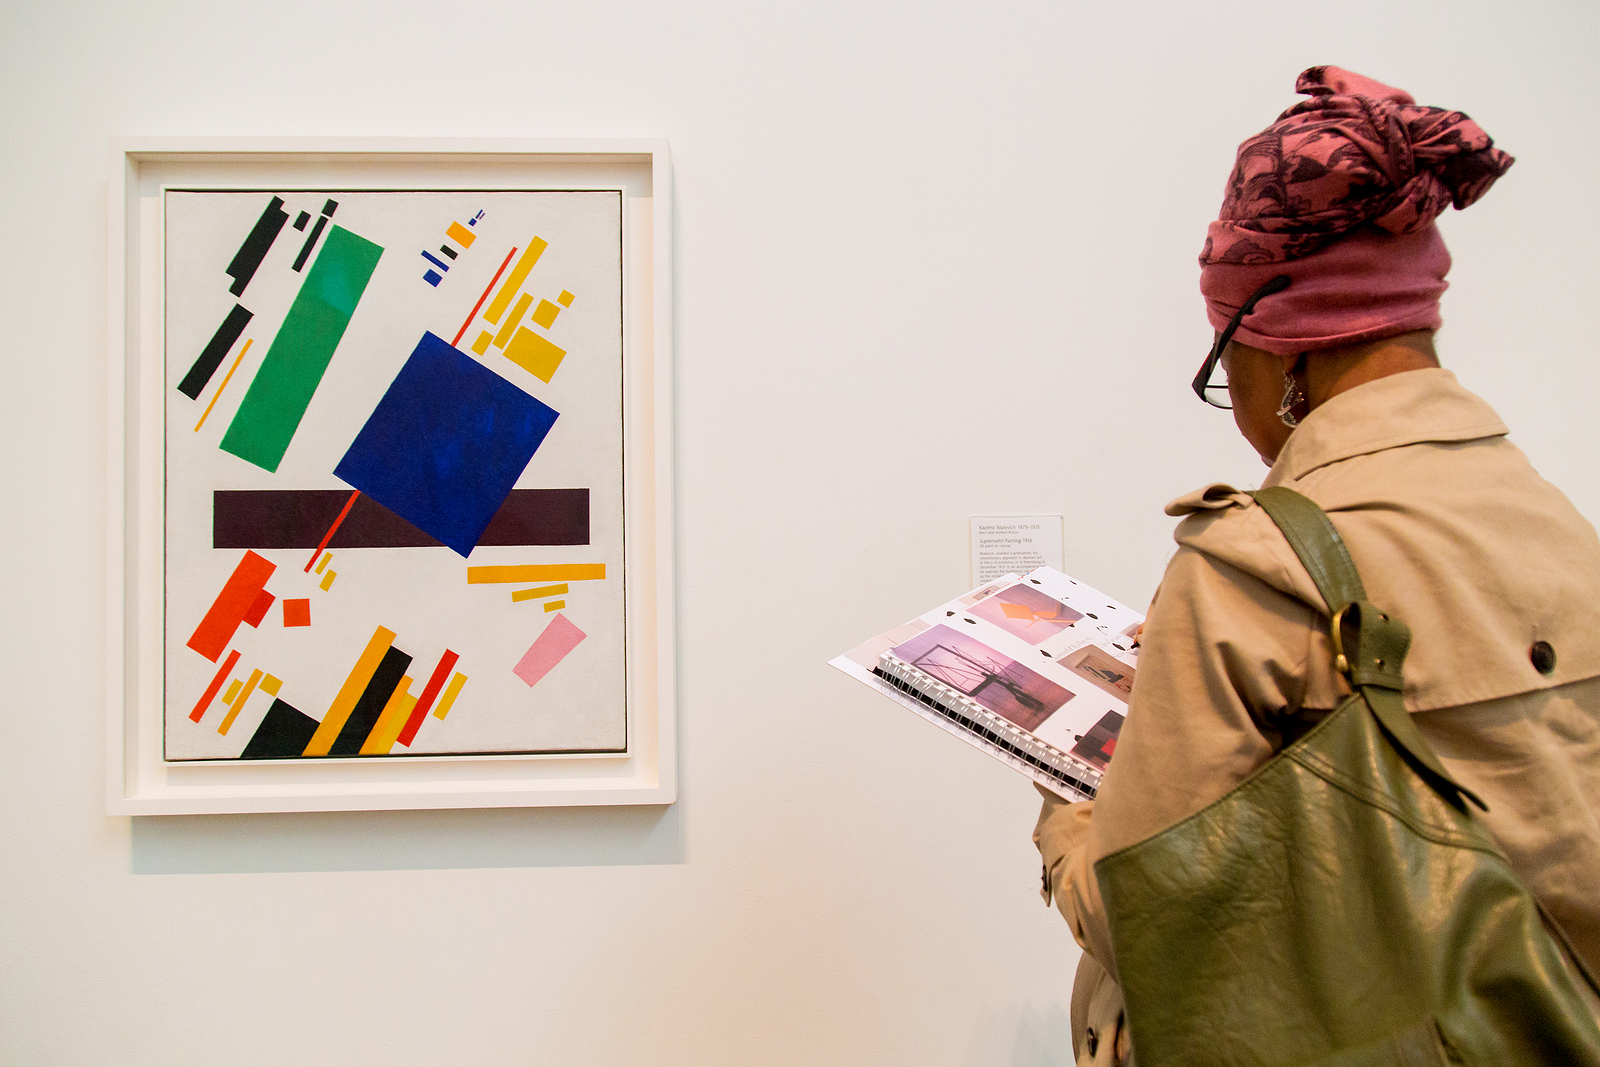 Suprematism As a Key Art Movement of Modern Abstract Art